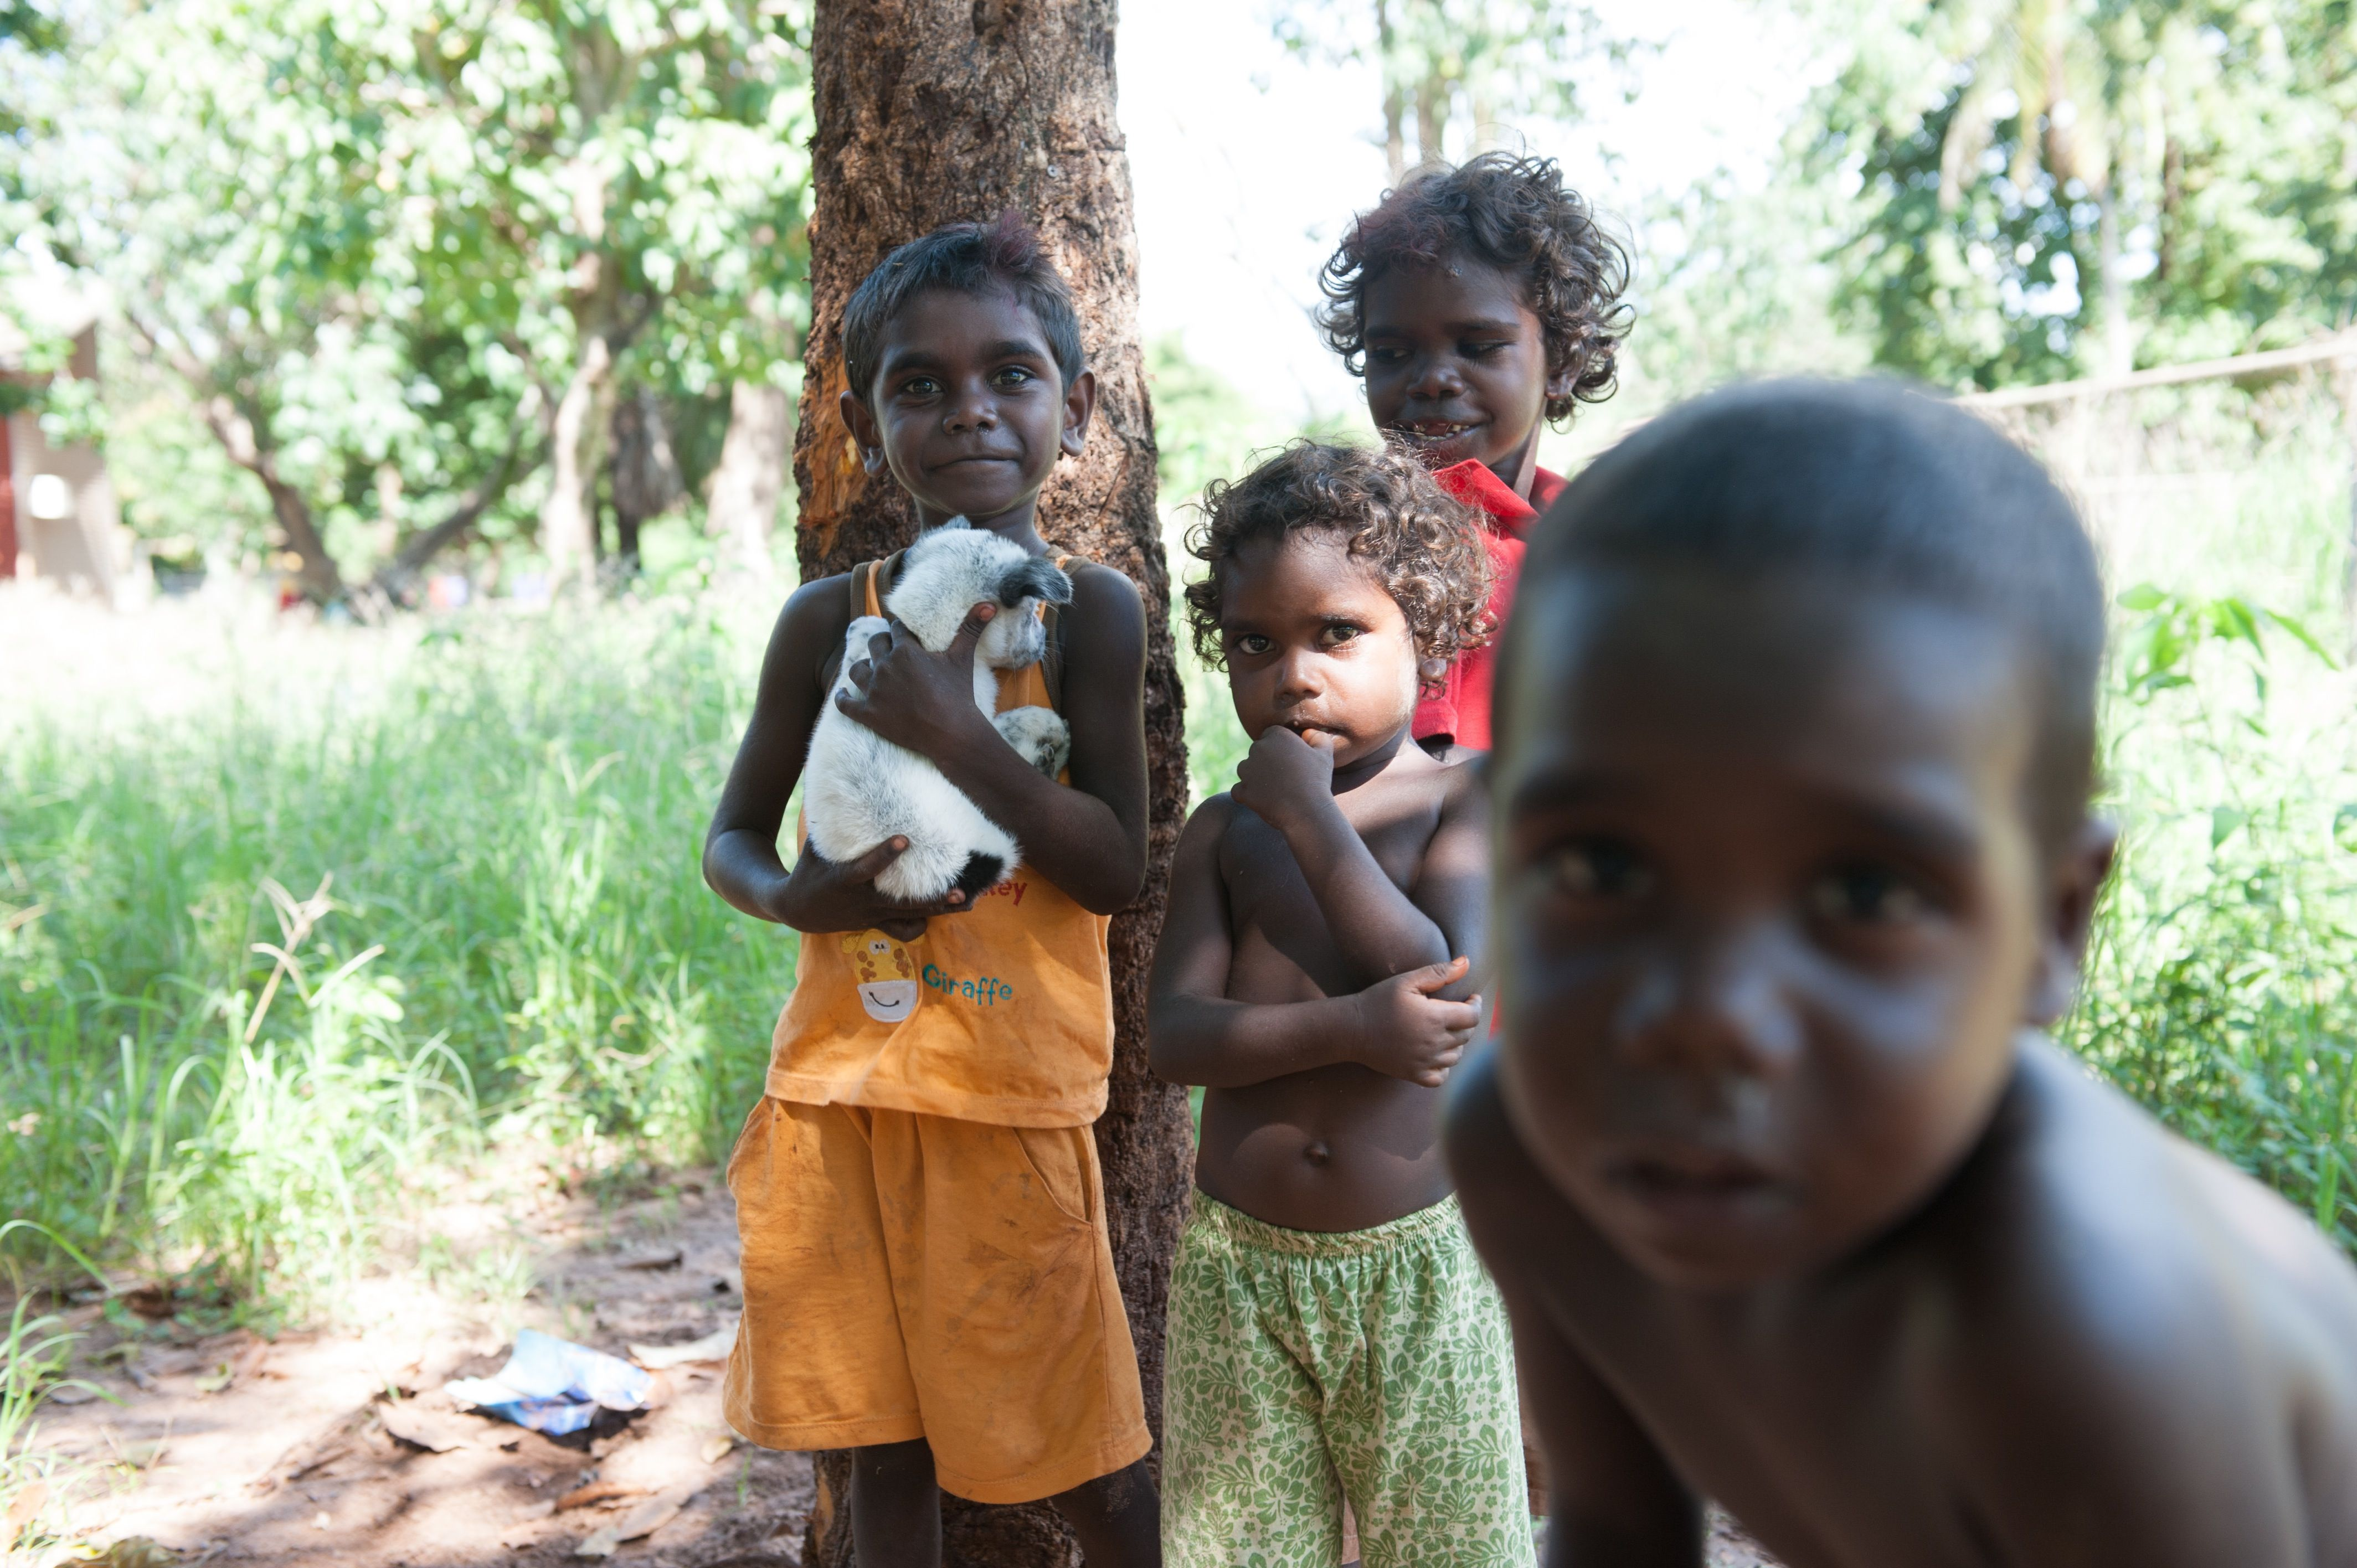 ANOTHER COUNTRY | Documentary Feature | Australia | D Molly Reynolds | L Yolngu Matha (